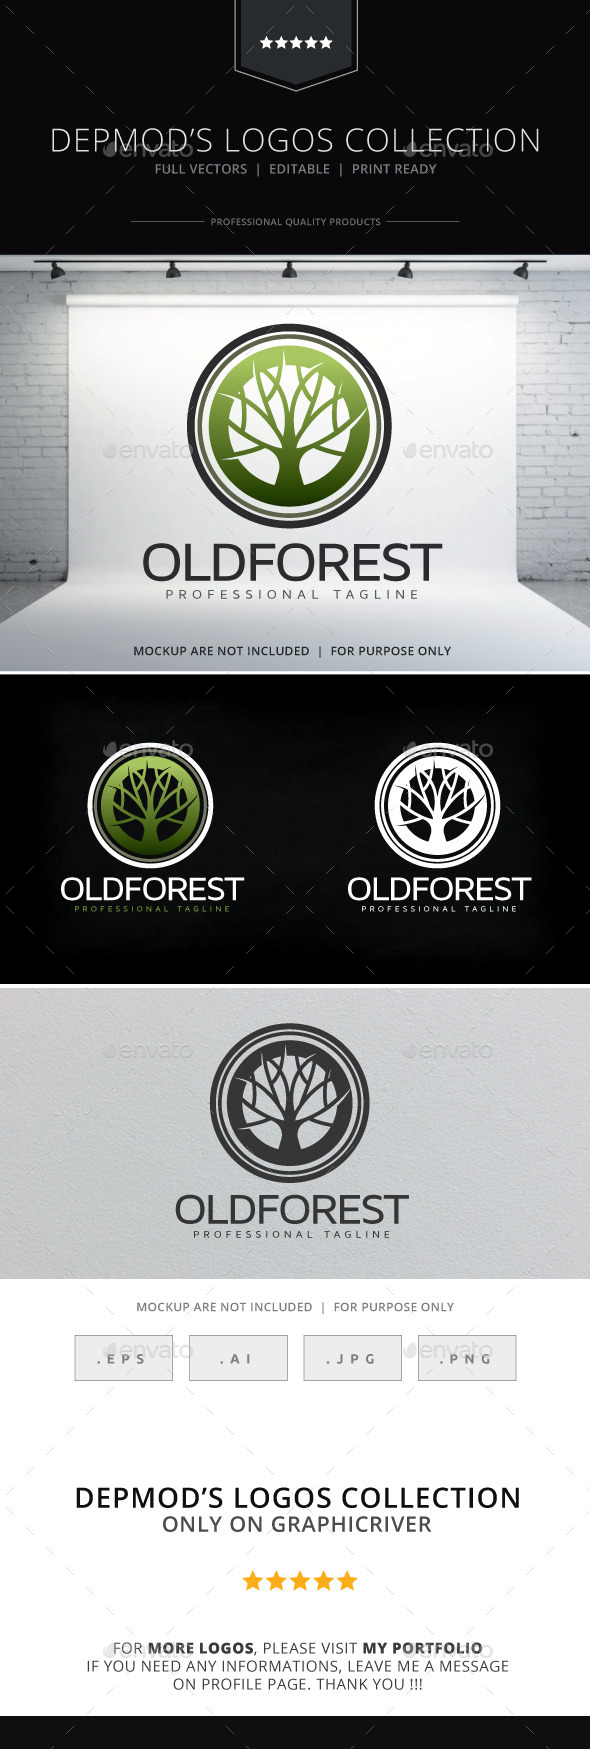 Old Forest Logo